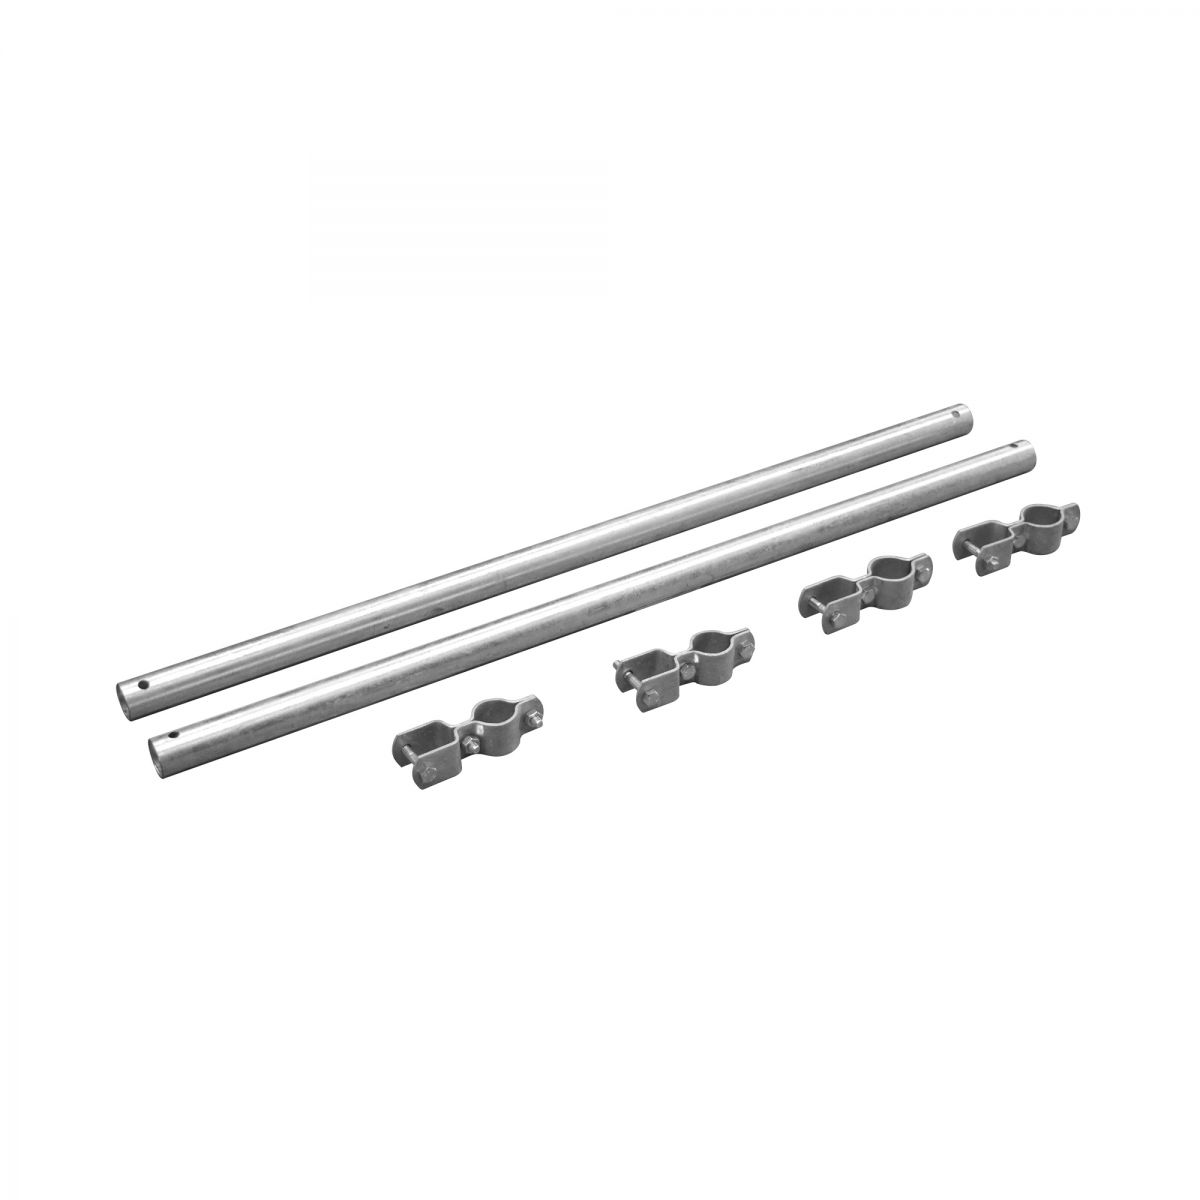 set le tube entretoise 1 x 1 avec colliers de fixation